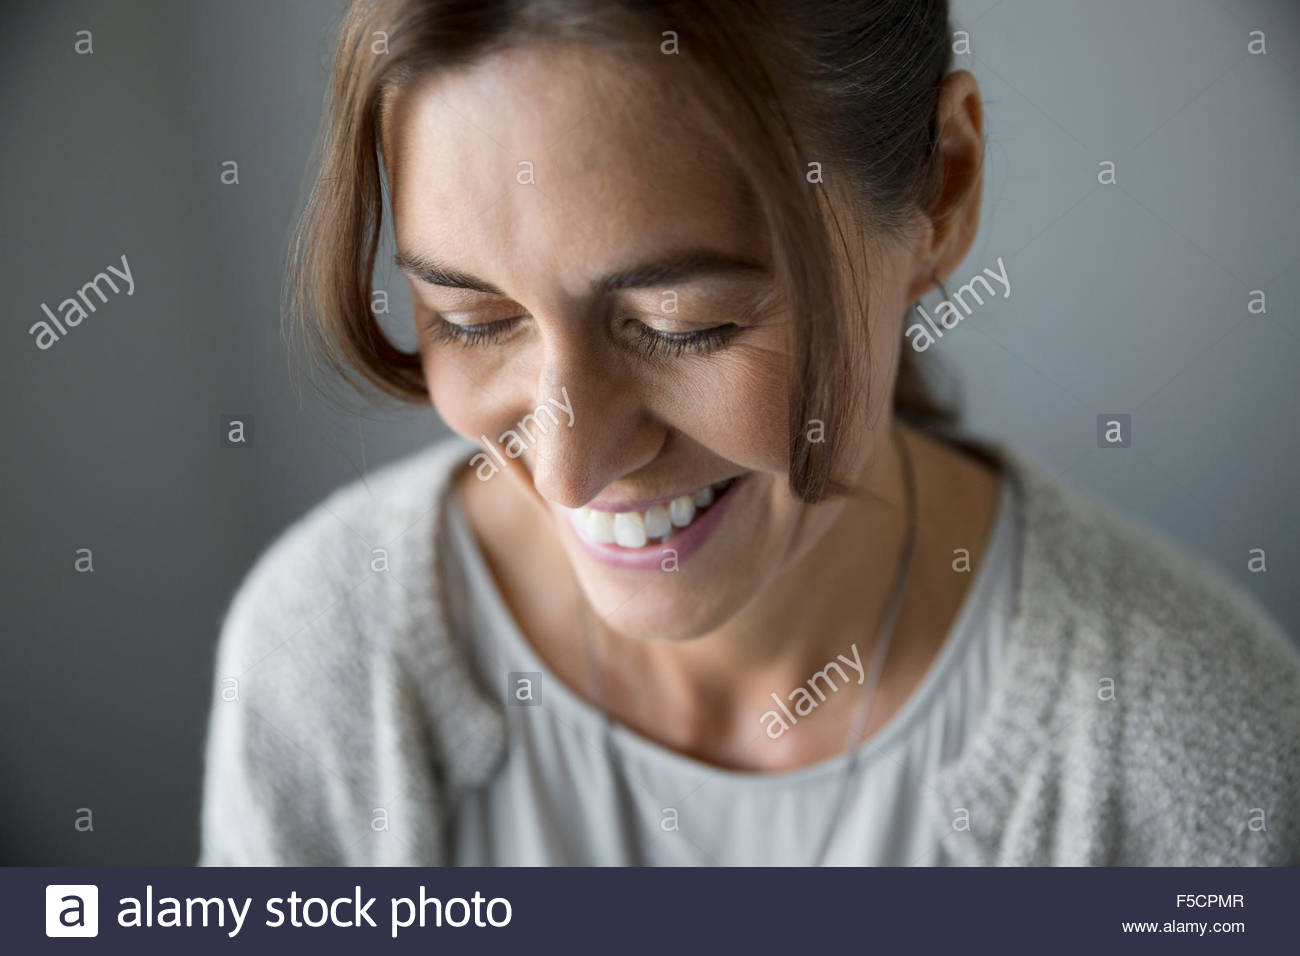 Close up laughing woman Photo Stock